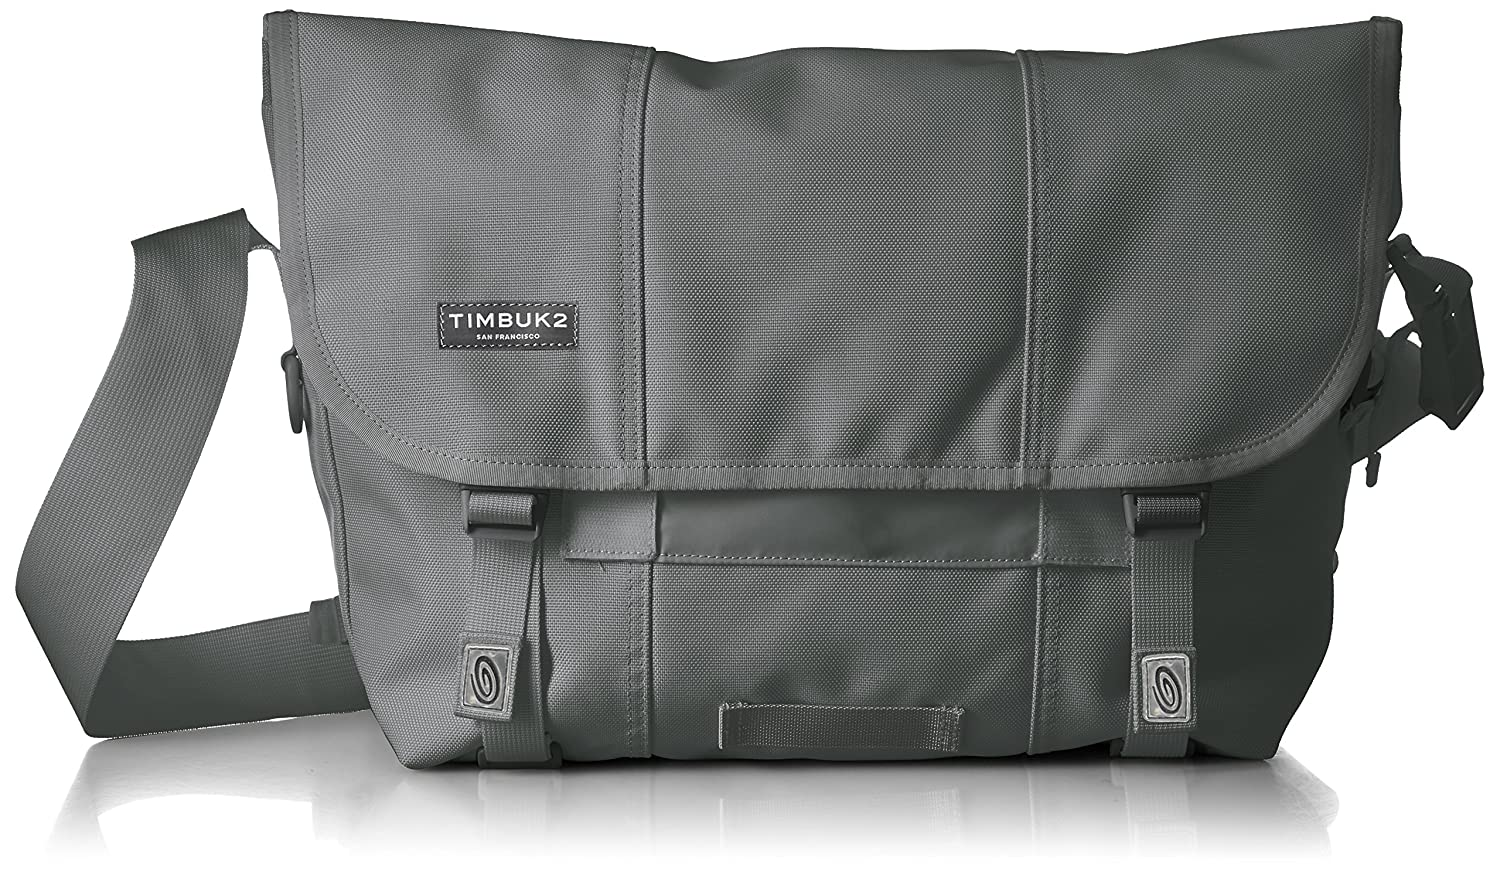 572aded51b31 Amazon.com: Timbuk2 Classic Messenger Bag